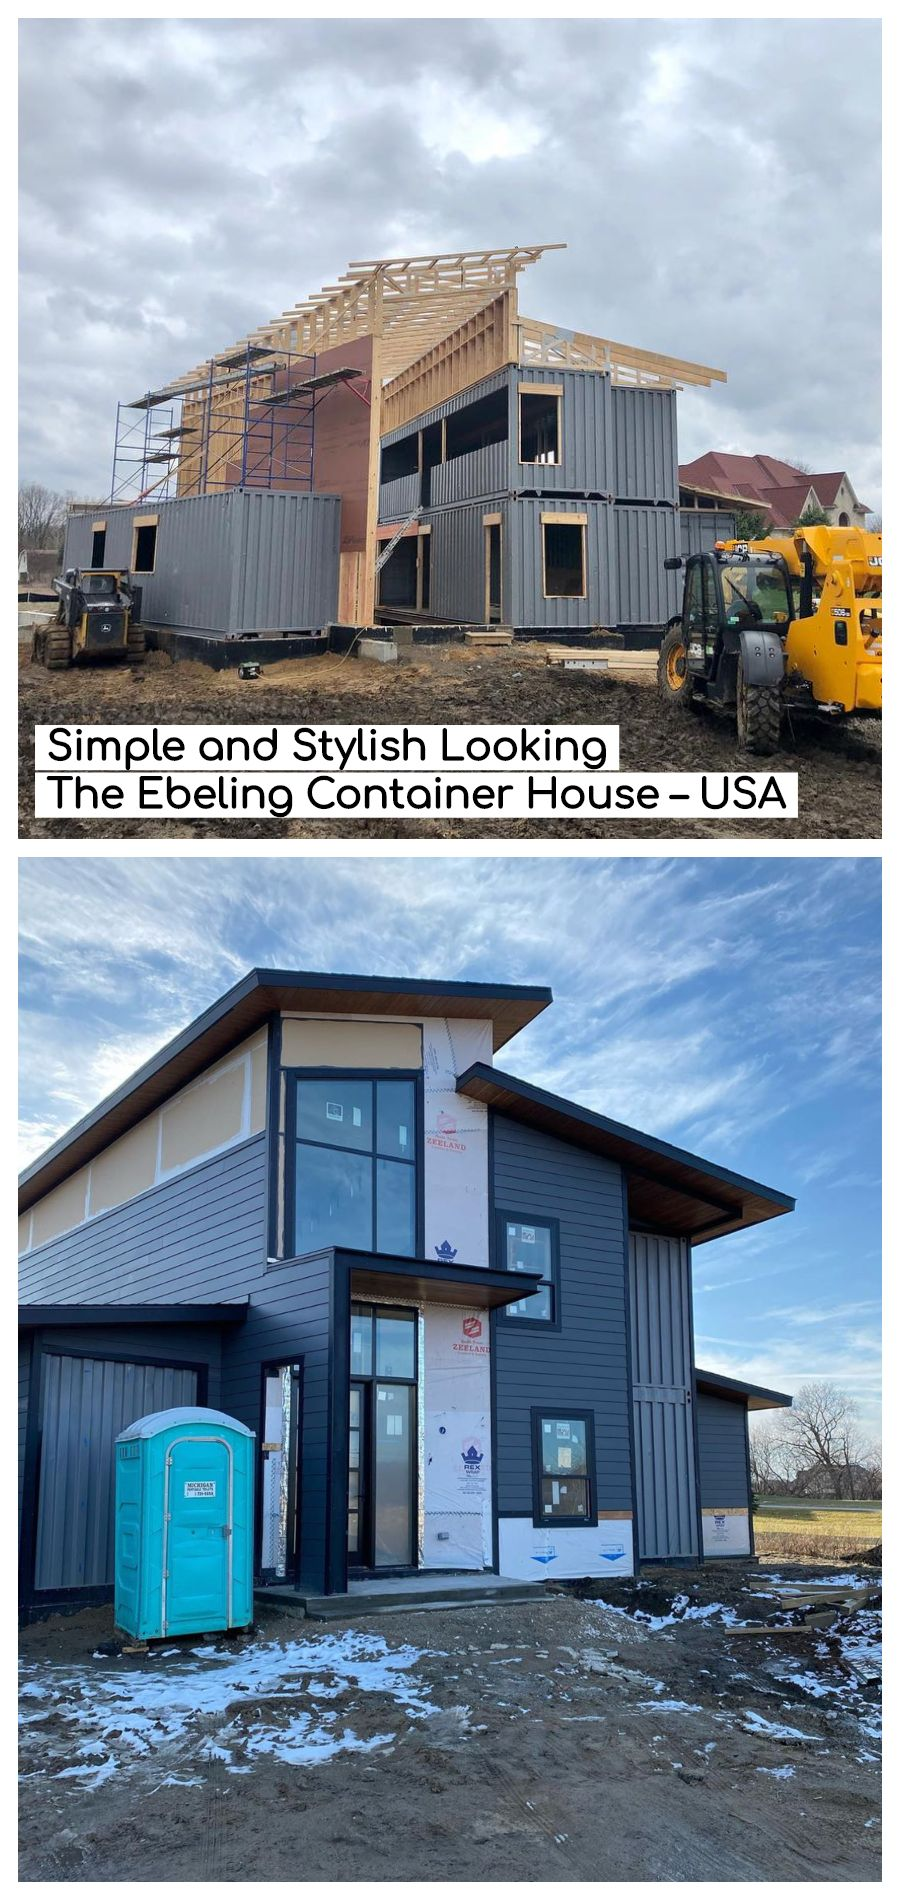 Simple and Stylish Looking The Ebeling Container House – Detroit, USA